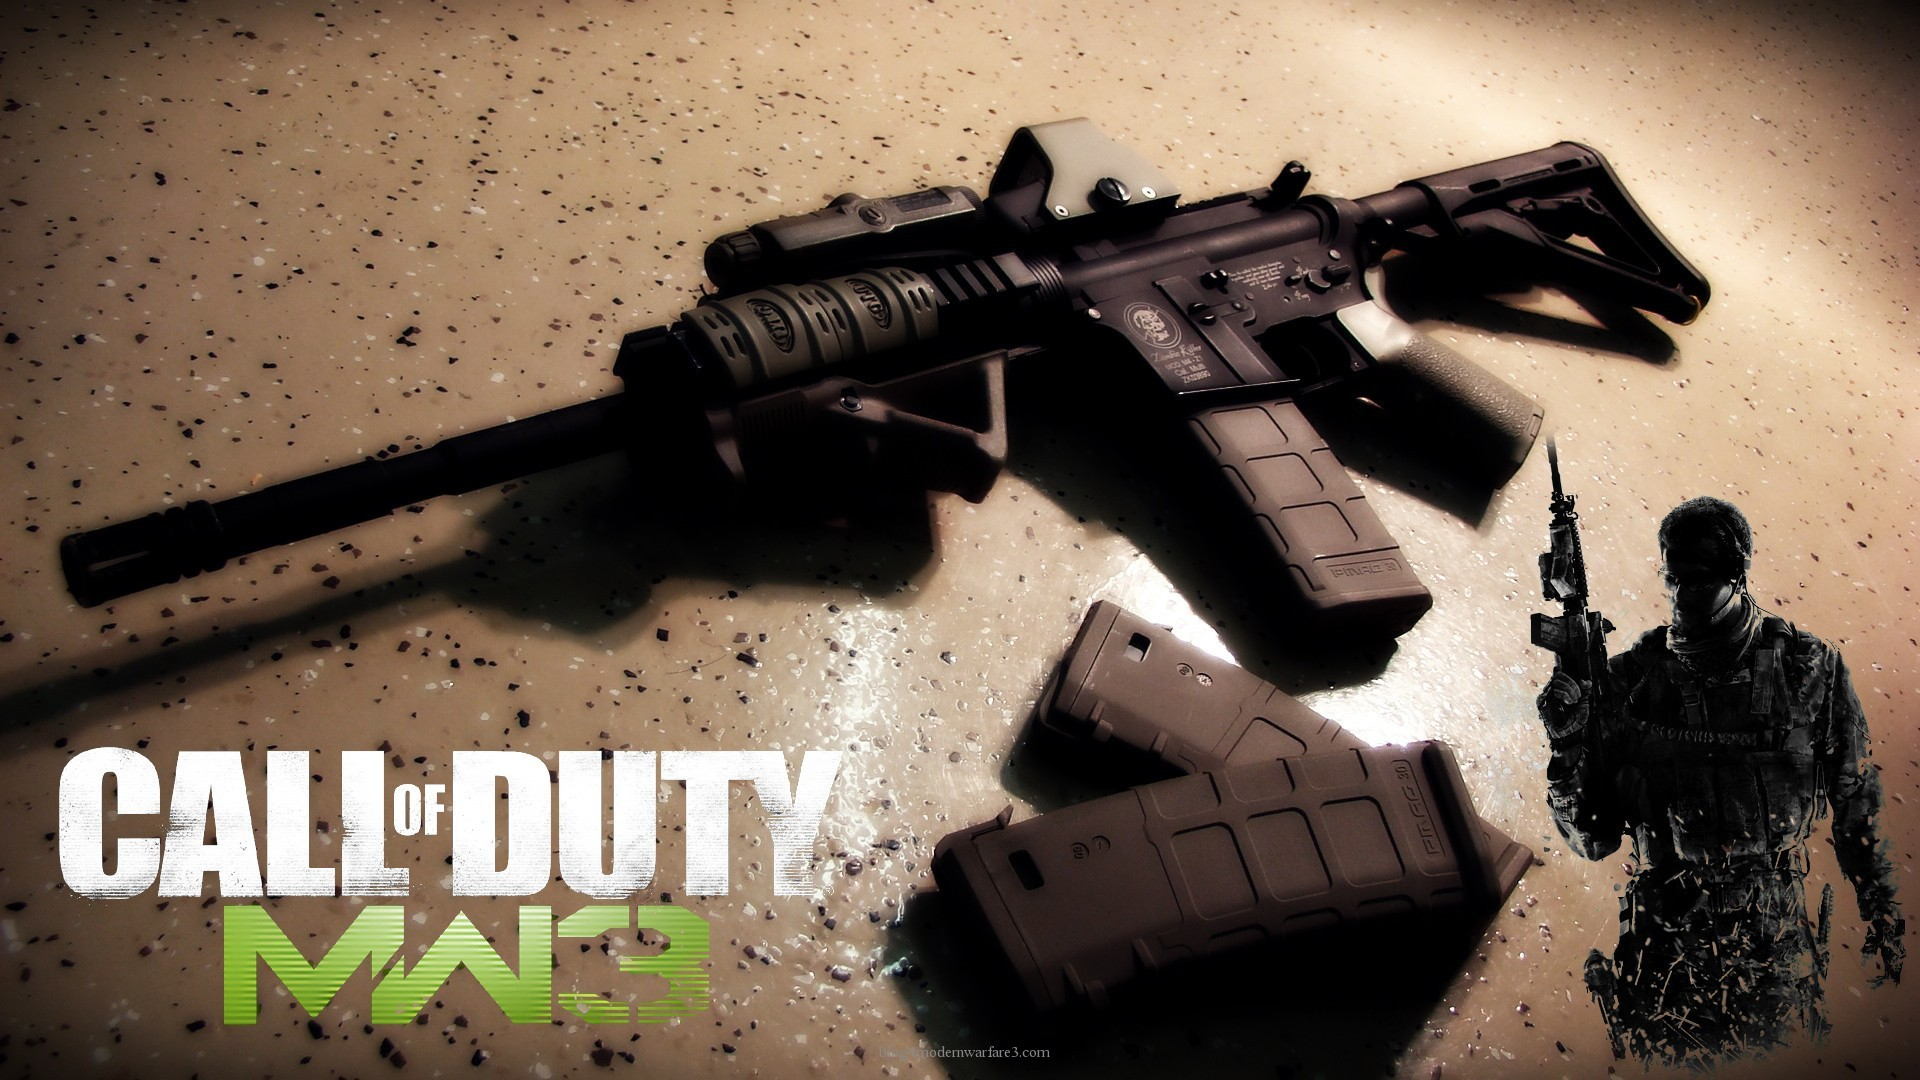 1920x1080 30 Wallpaper Of Call Duty Modern Warfare 3 In Widescreen